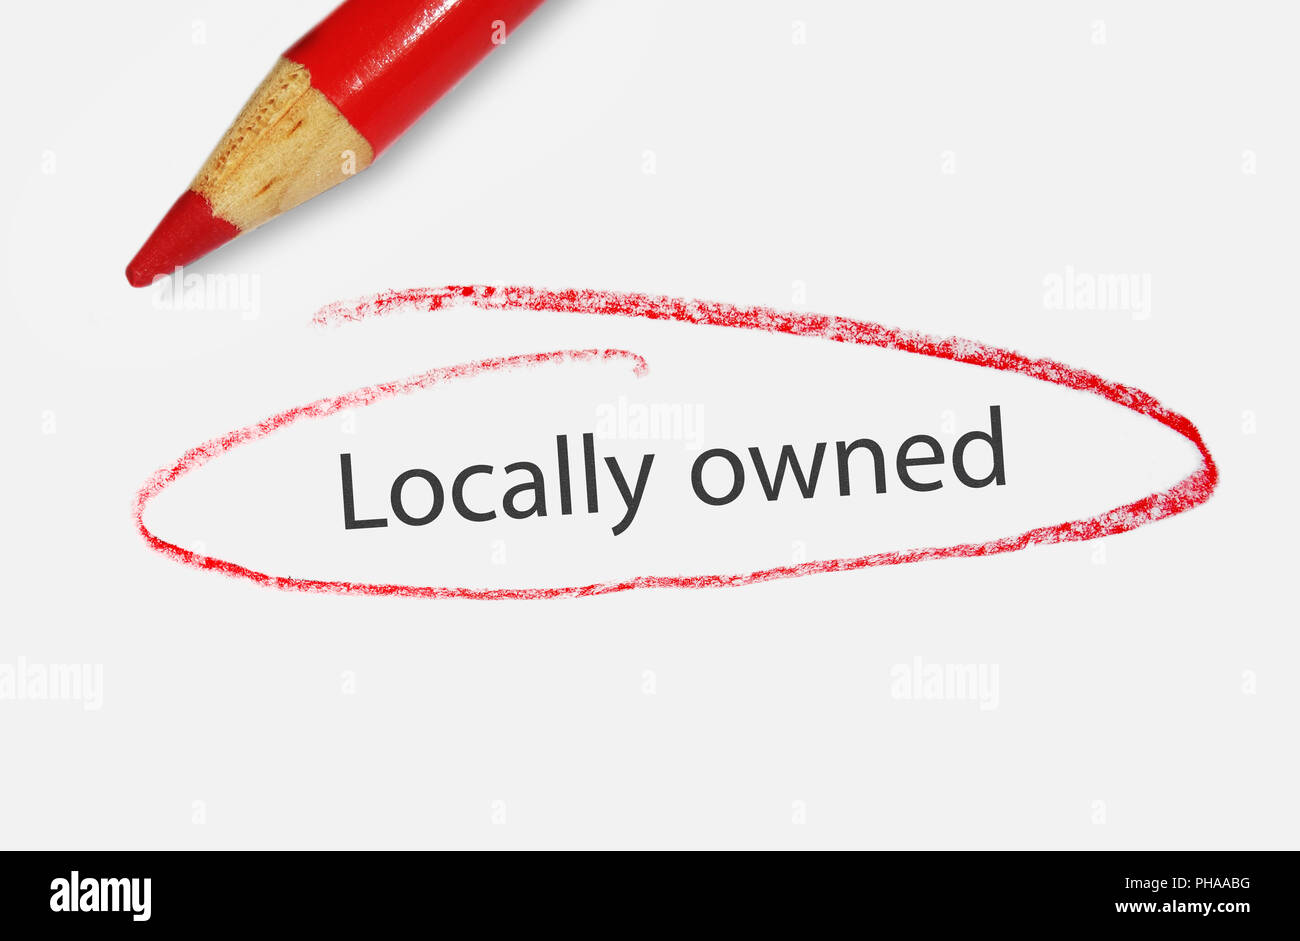 locally owned - Stock Image